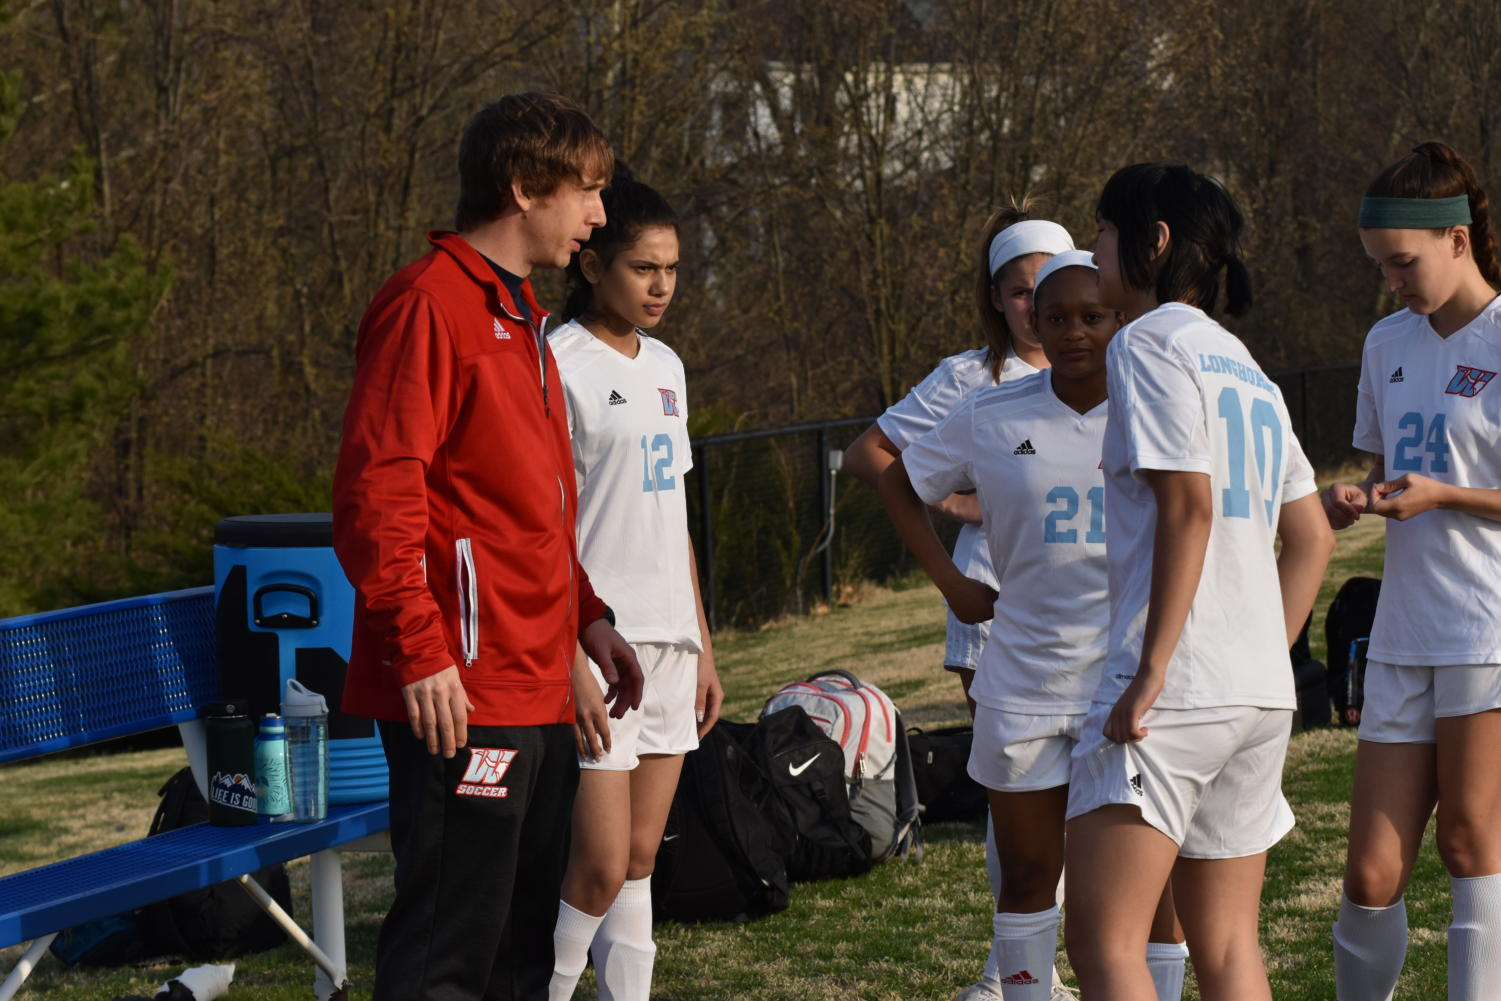 JV soccer coach Darren Rahe informs his players what position they will be playing. Rahe taught the girls about their role on and off the field. ¨If you approach practice each and everyday to be the best that you can be, you can use that same mental focus for anything that you do in life,¨ Rahe said.